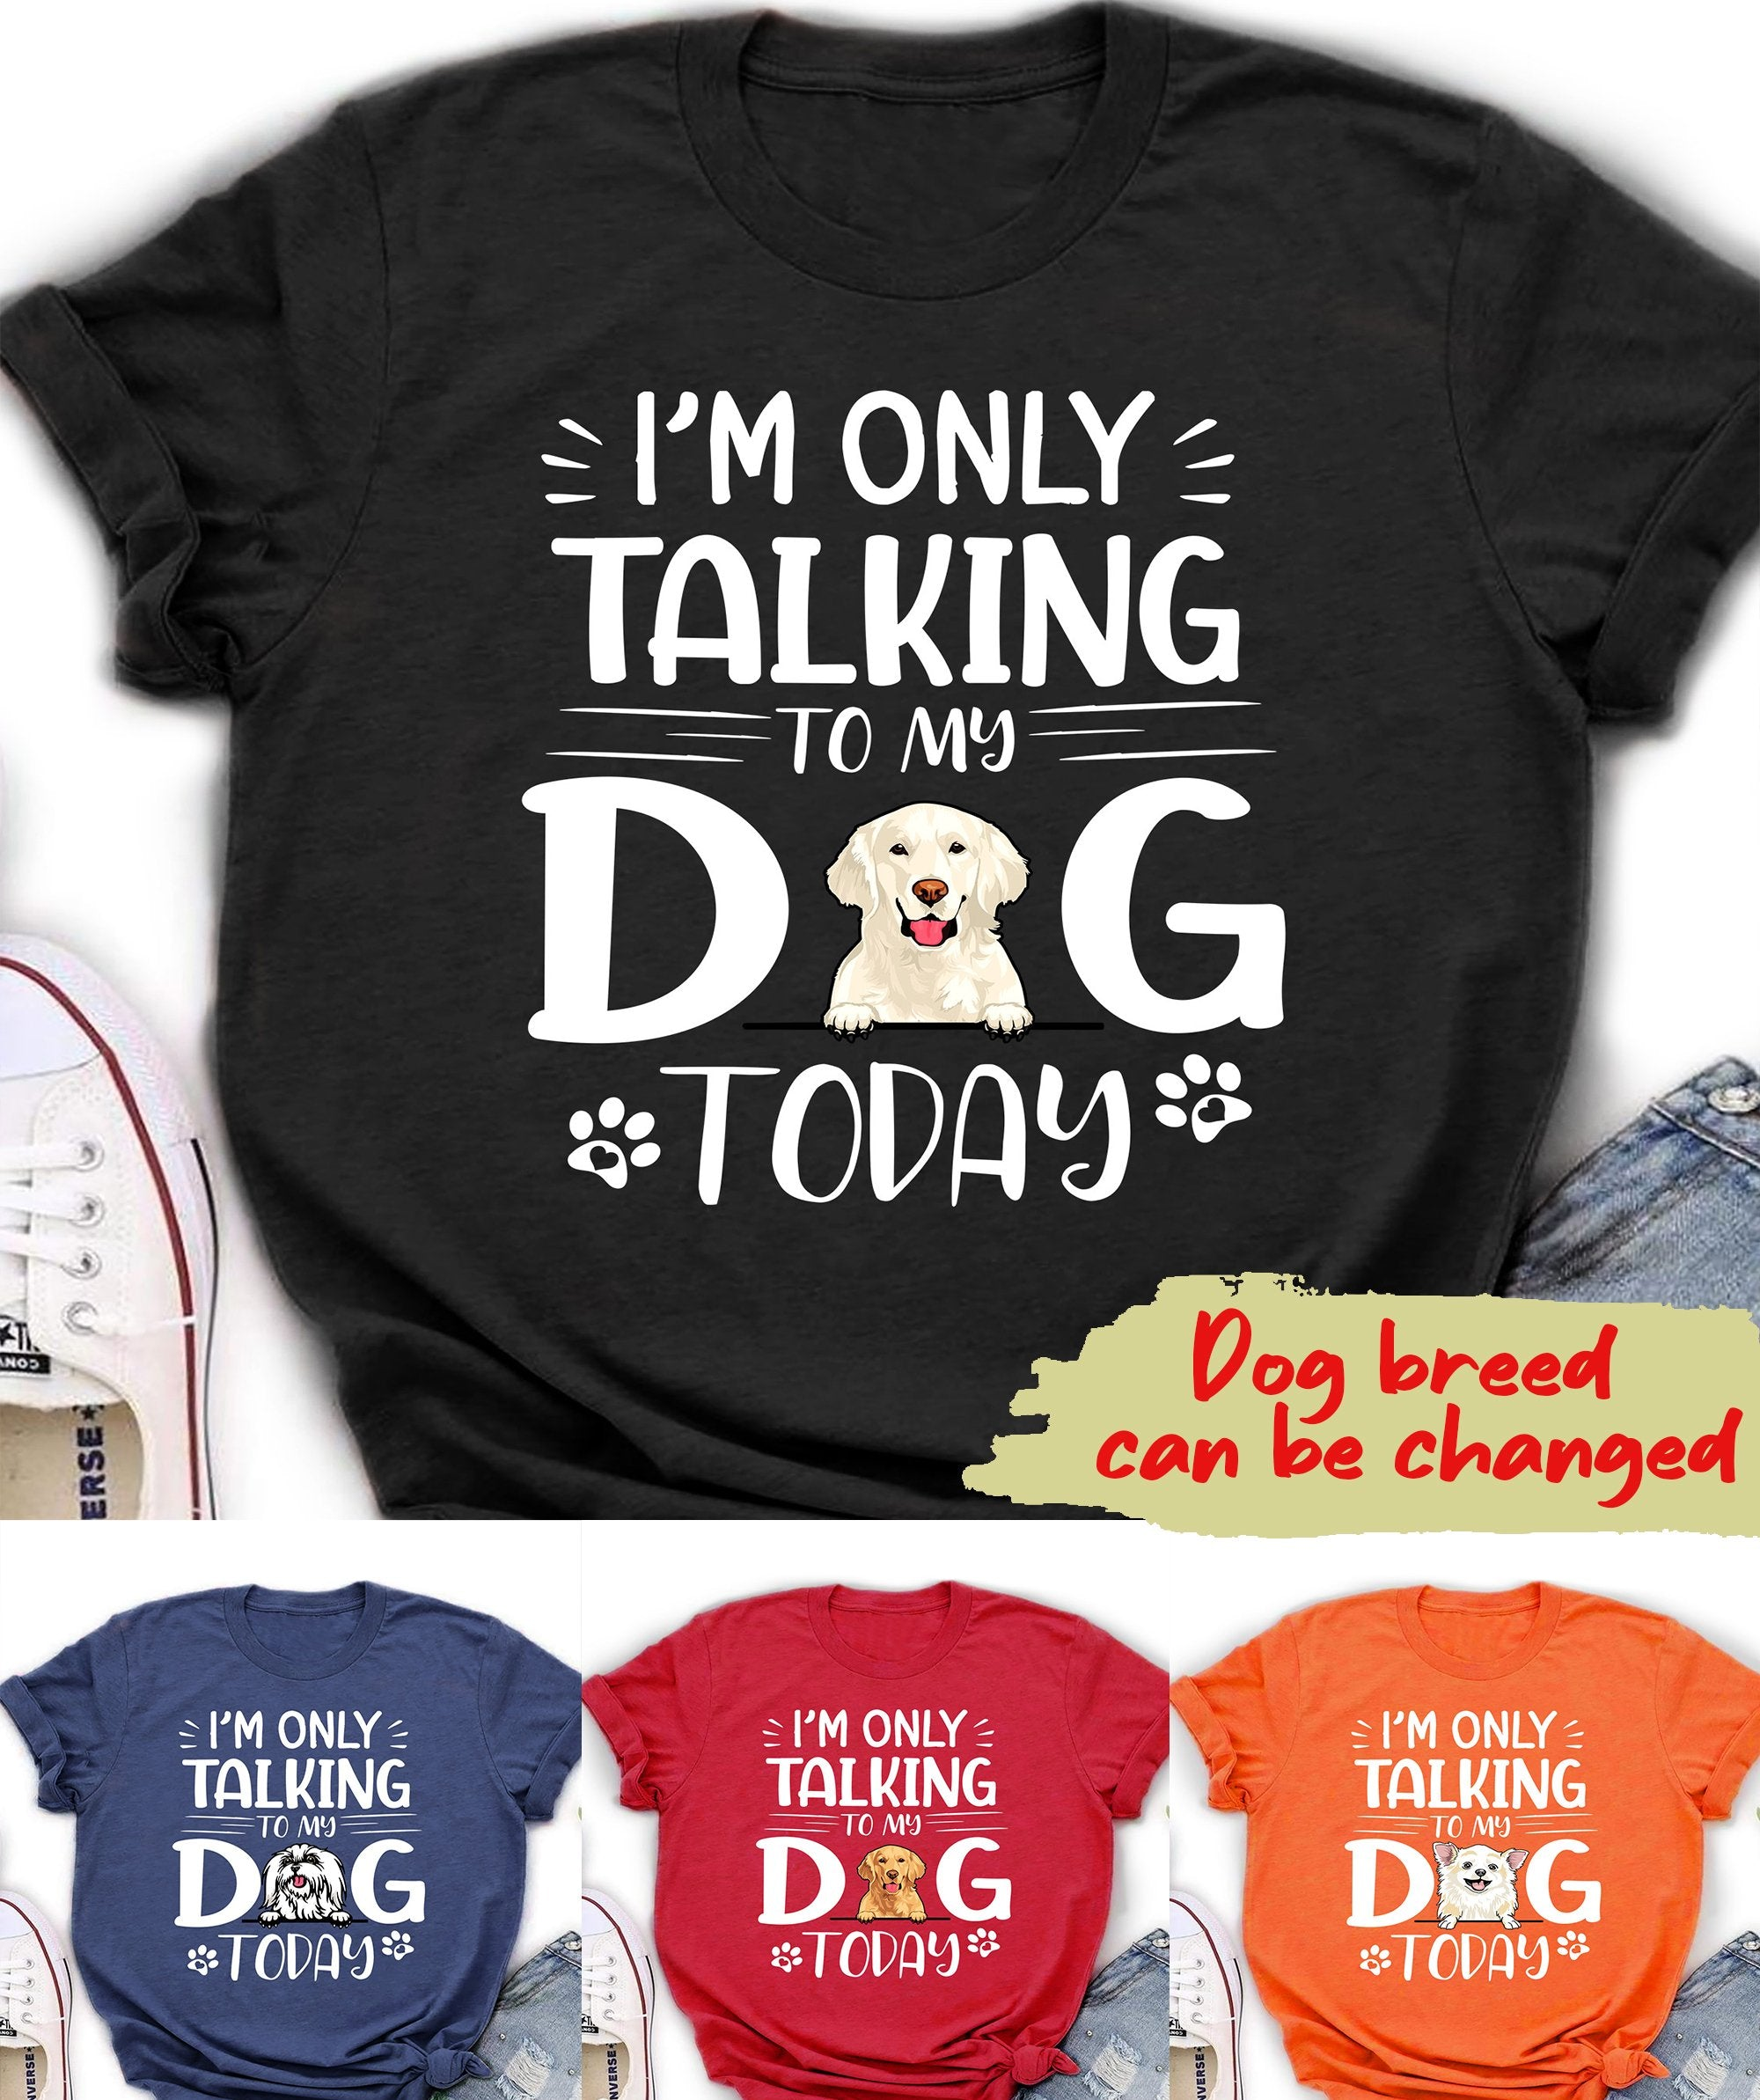 I'M ONLY TALKING TO MY DOG TODAY - PERSONALIZED CUSTOM UNISEX CLASSIC T-SHIRT